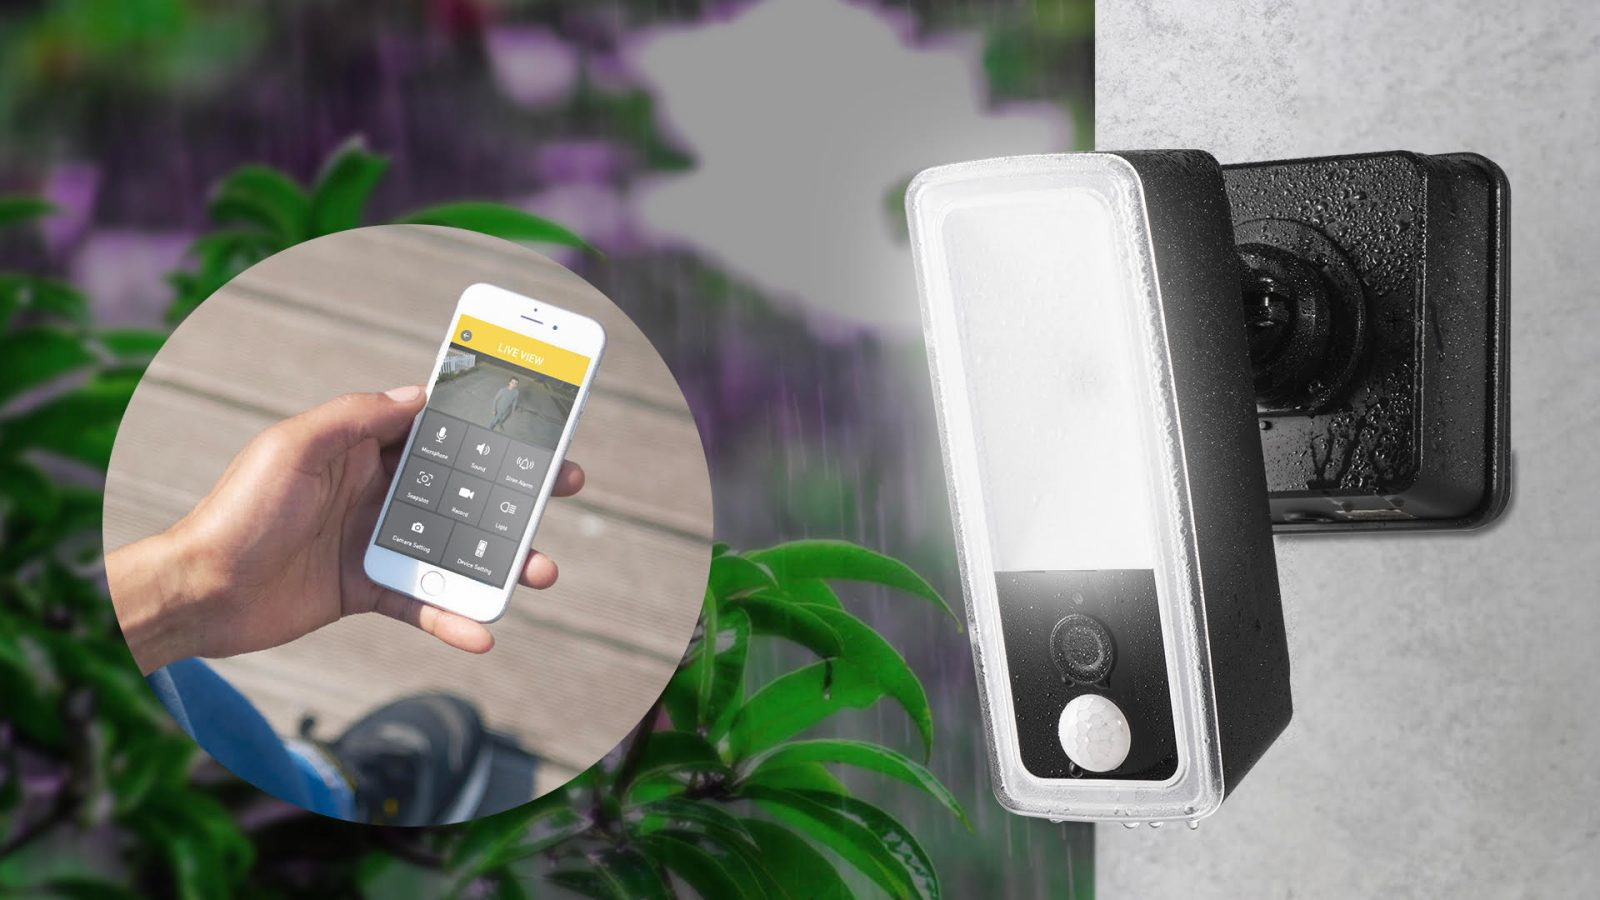 KODA's new LightCam is a motion activated security camera with floodlight + alarm